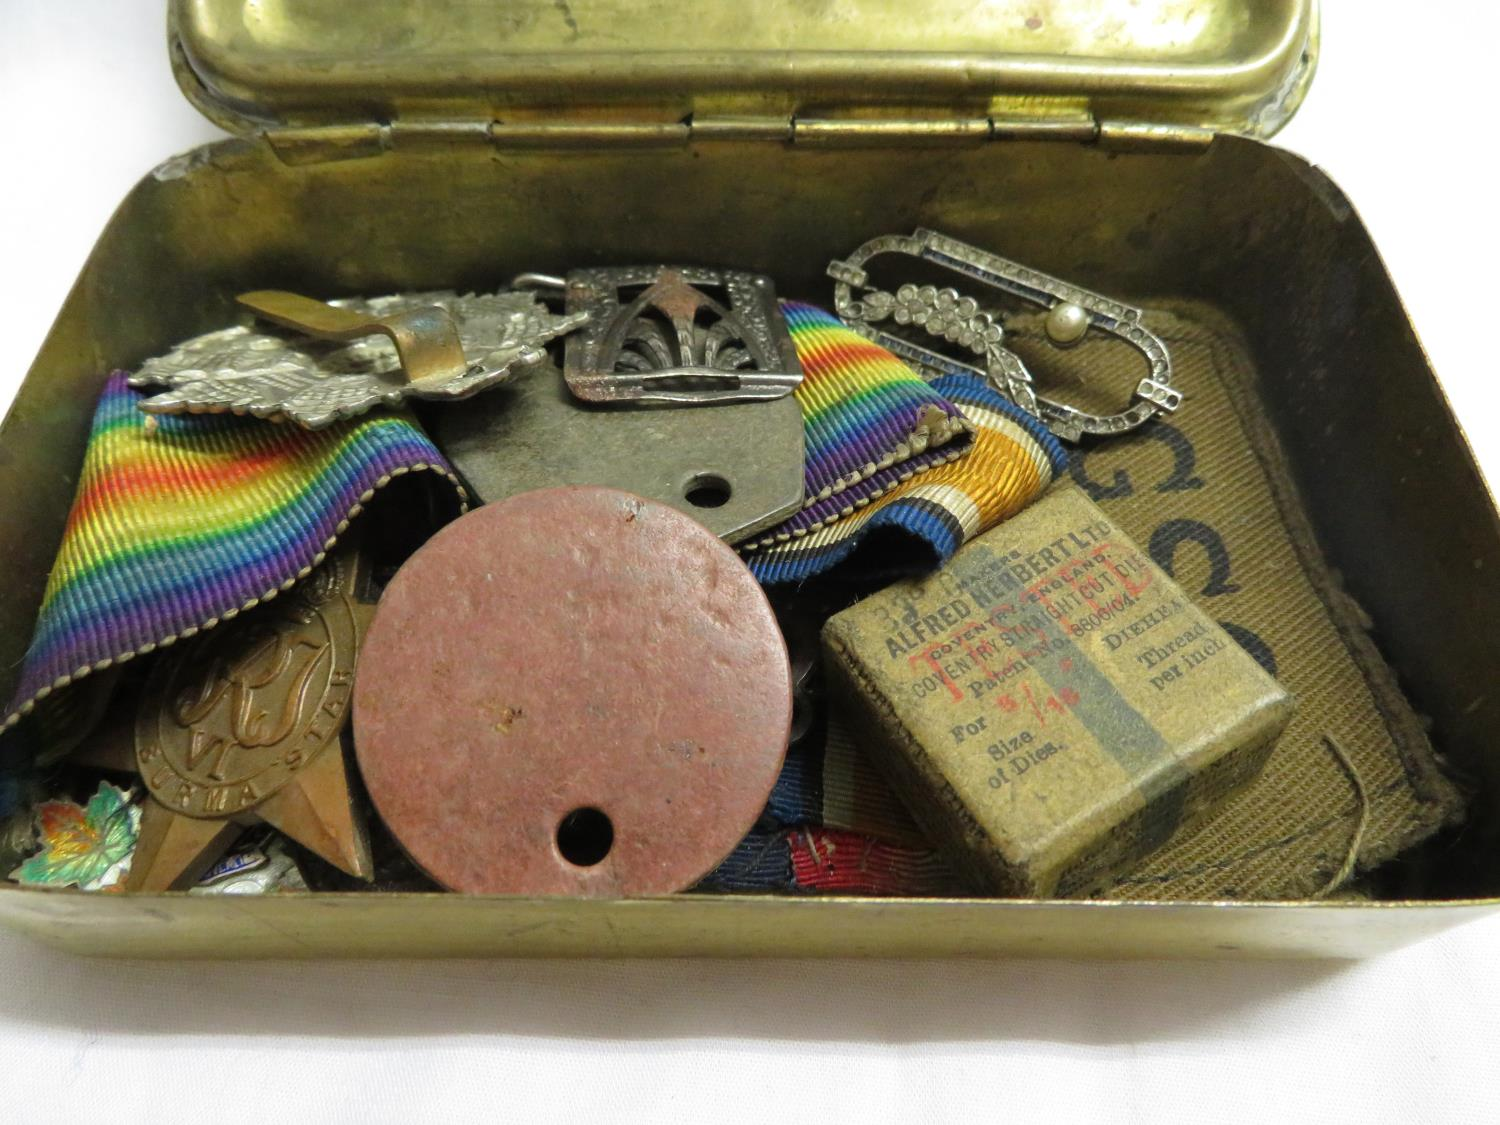 Lot 36 - WWI Christmas box containing sweetheart brooches, fobs and other militaria including dog tags